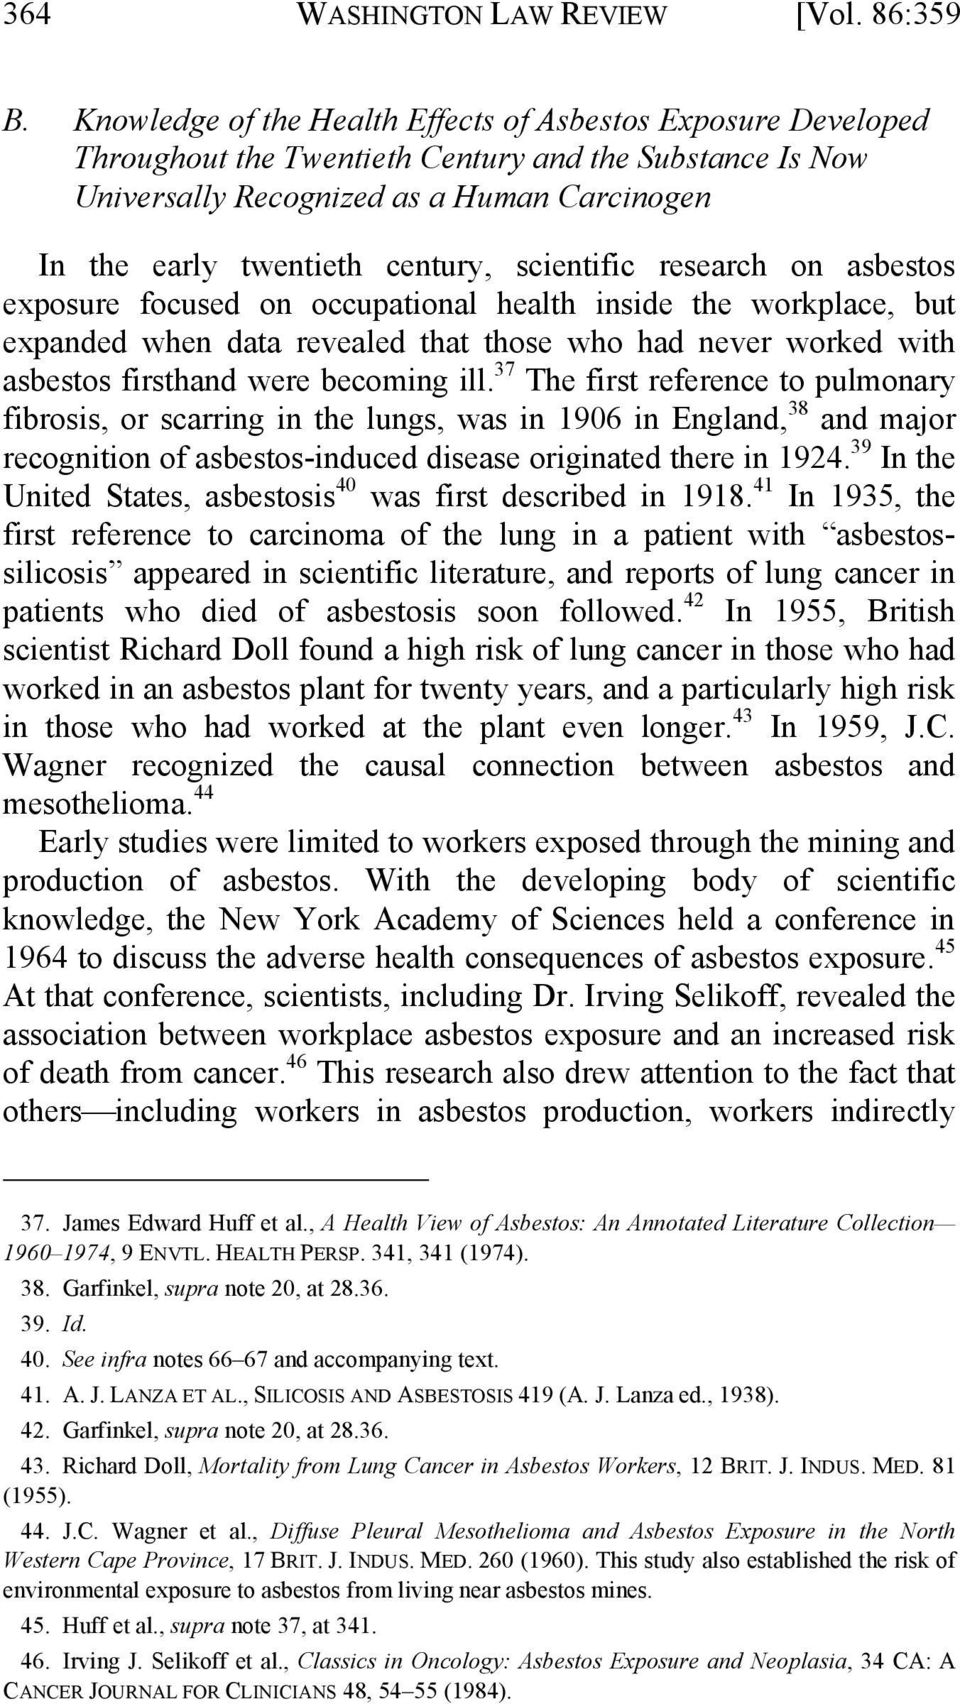 scientific research on asbestos exposure focused on occupational health inside the workplace, but expanded when data revealed that those who had never worked with asbestos firsthand were becoming ill.